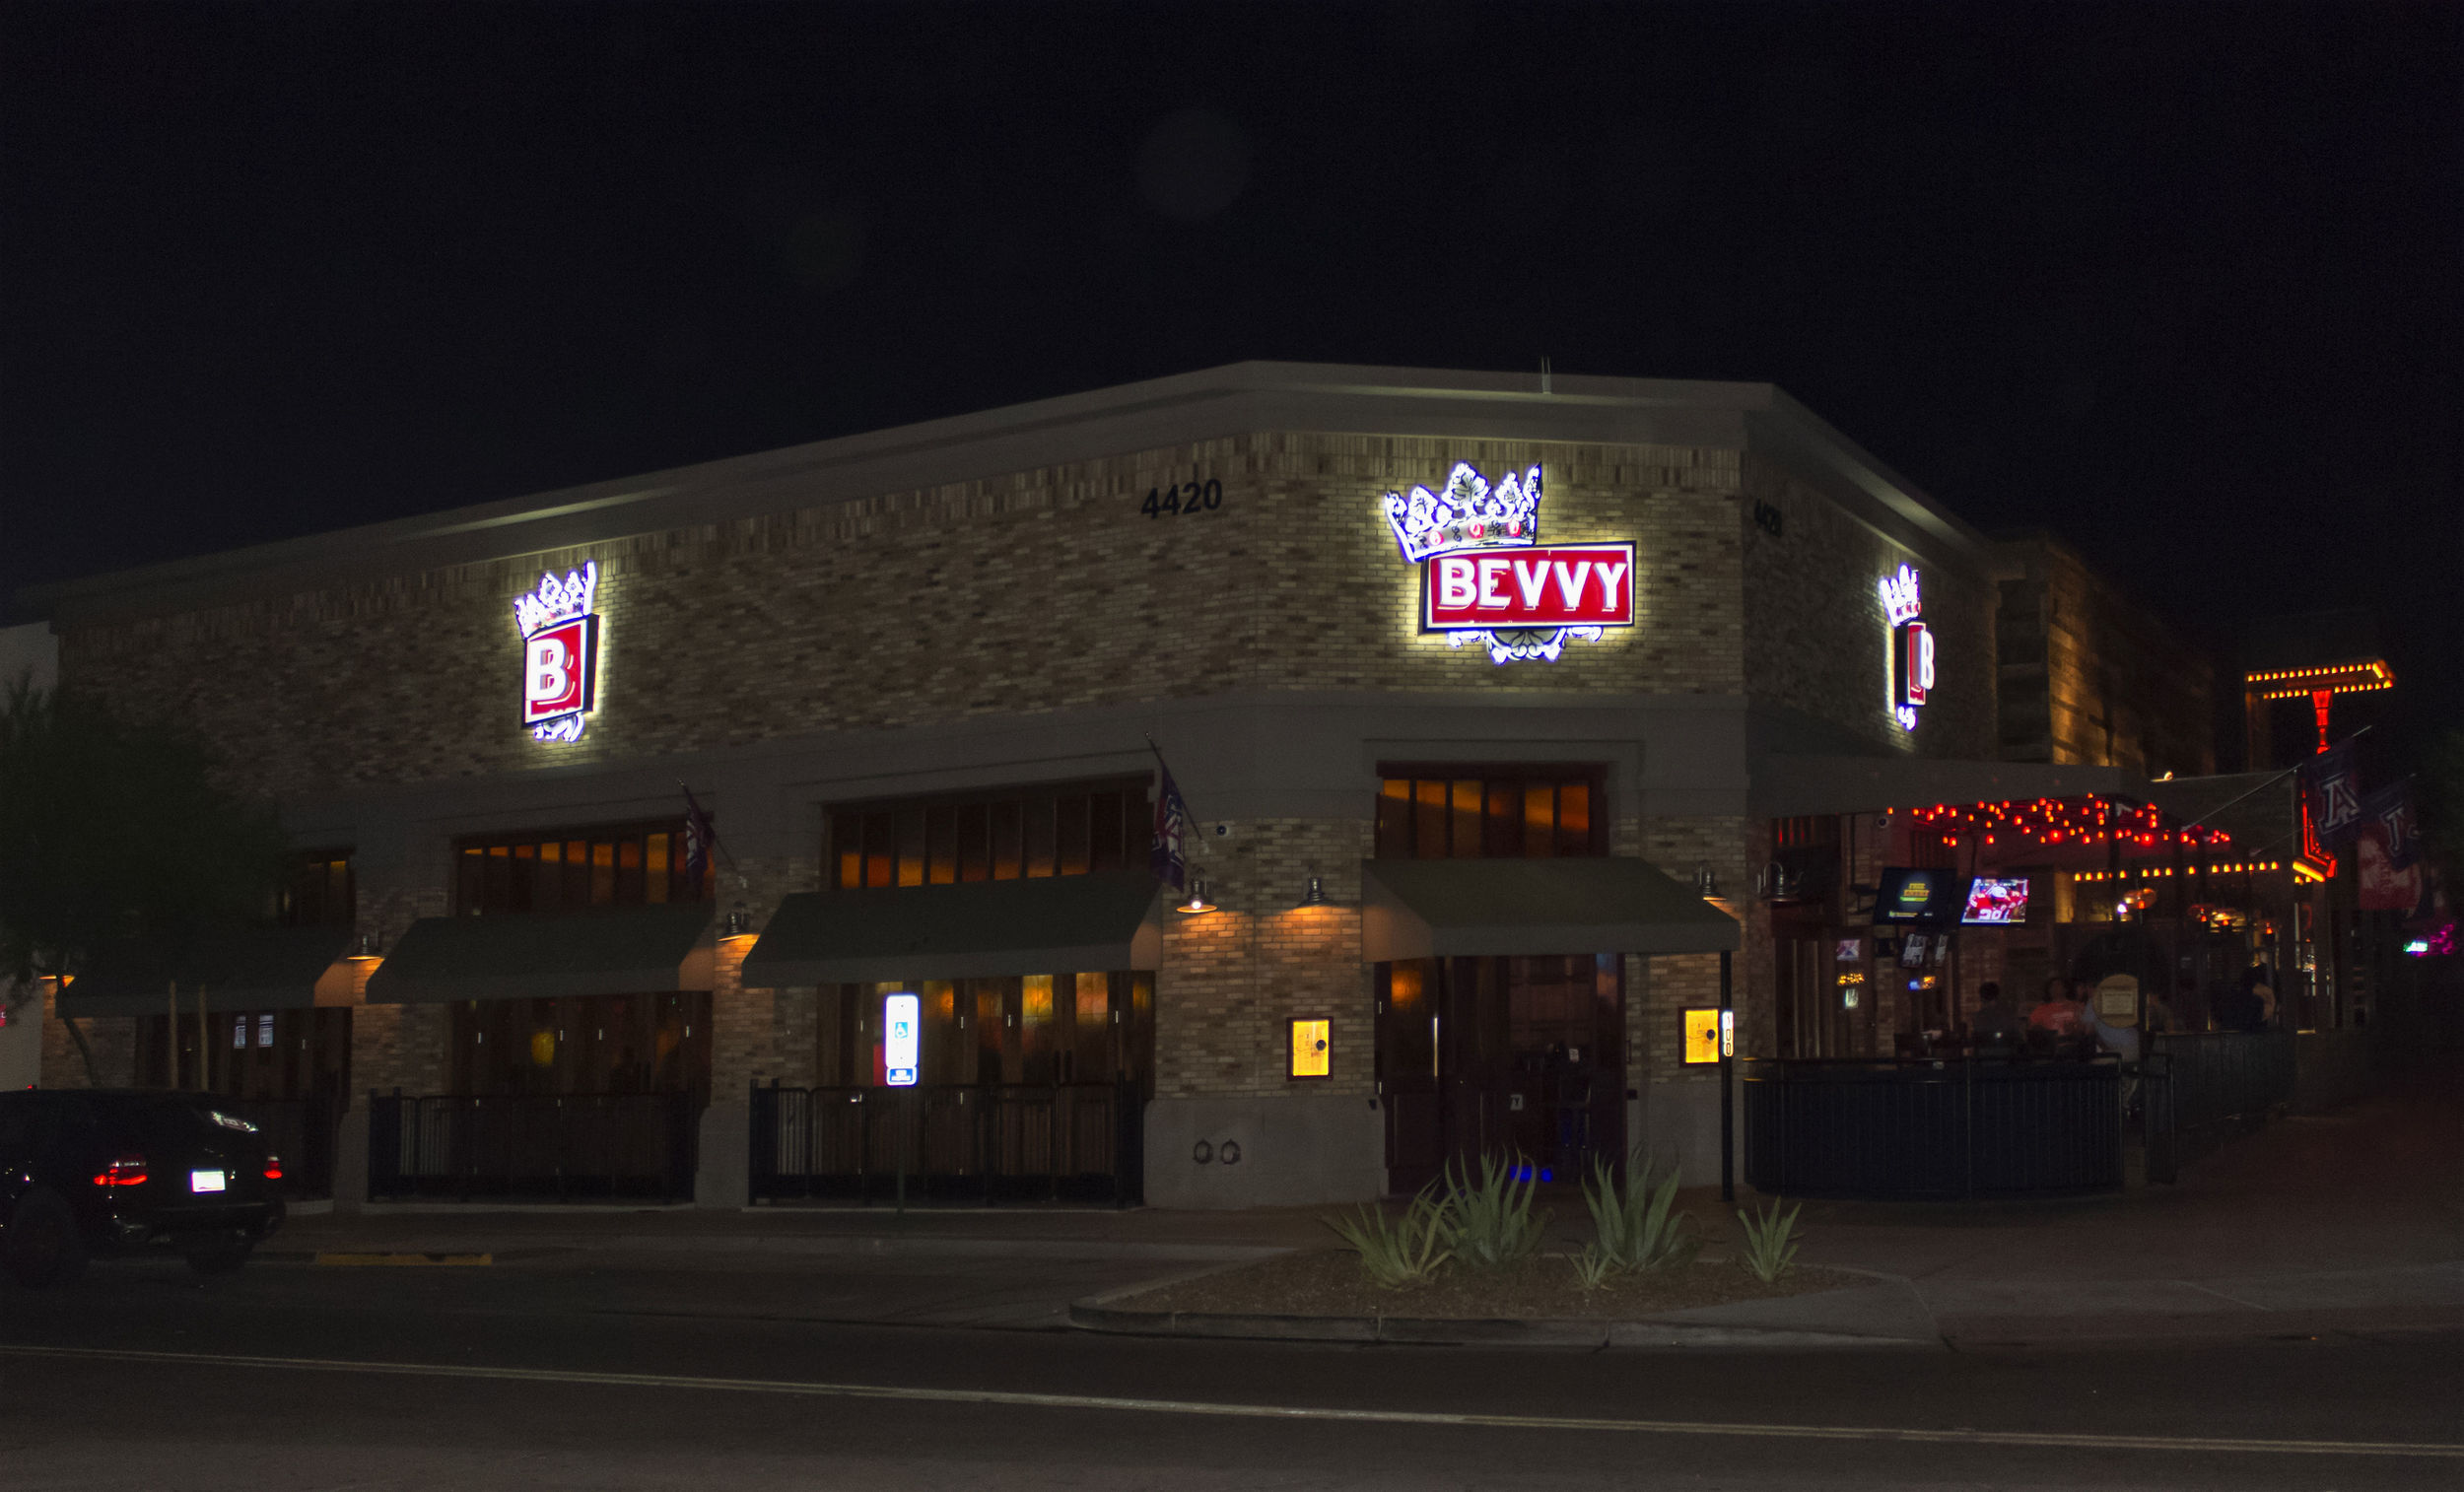 Bevvy Scottsdale Night View